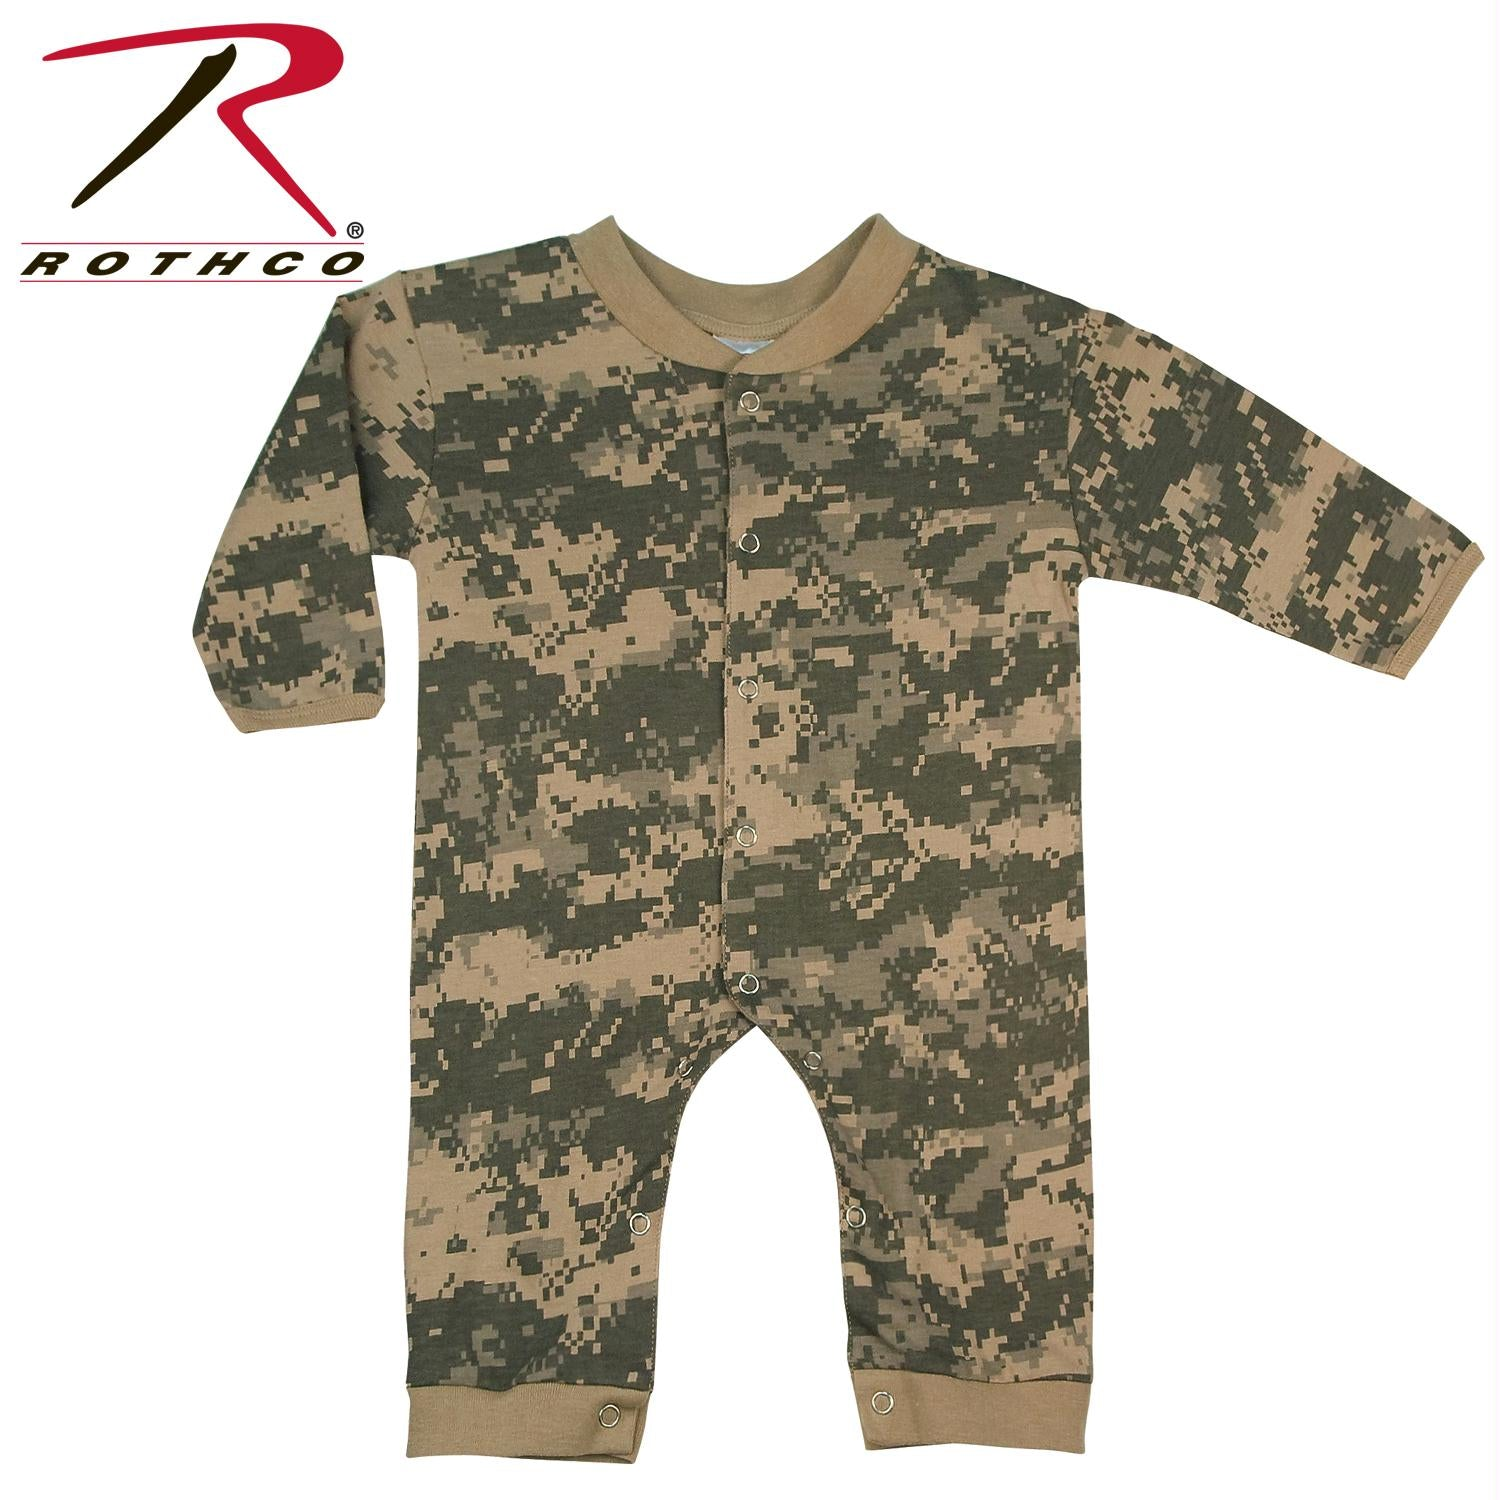 Rothco Infant Camo Long Sleeve and Leg One-piece Bodysuit - ACU Digital Camo / 9-12 Months